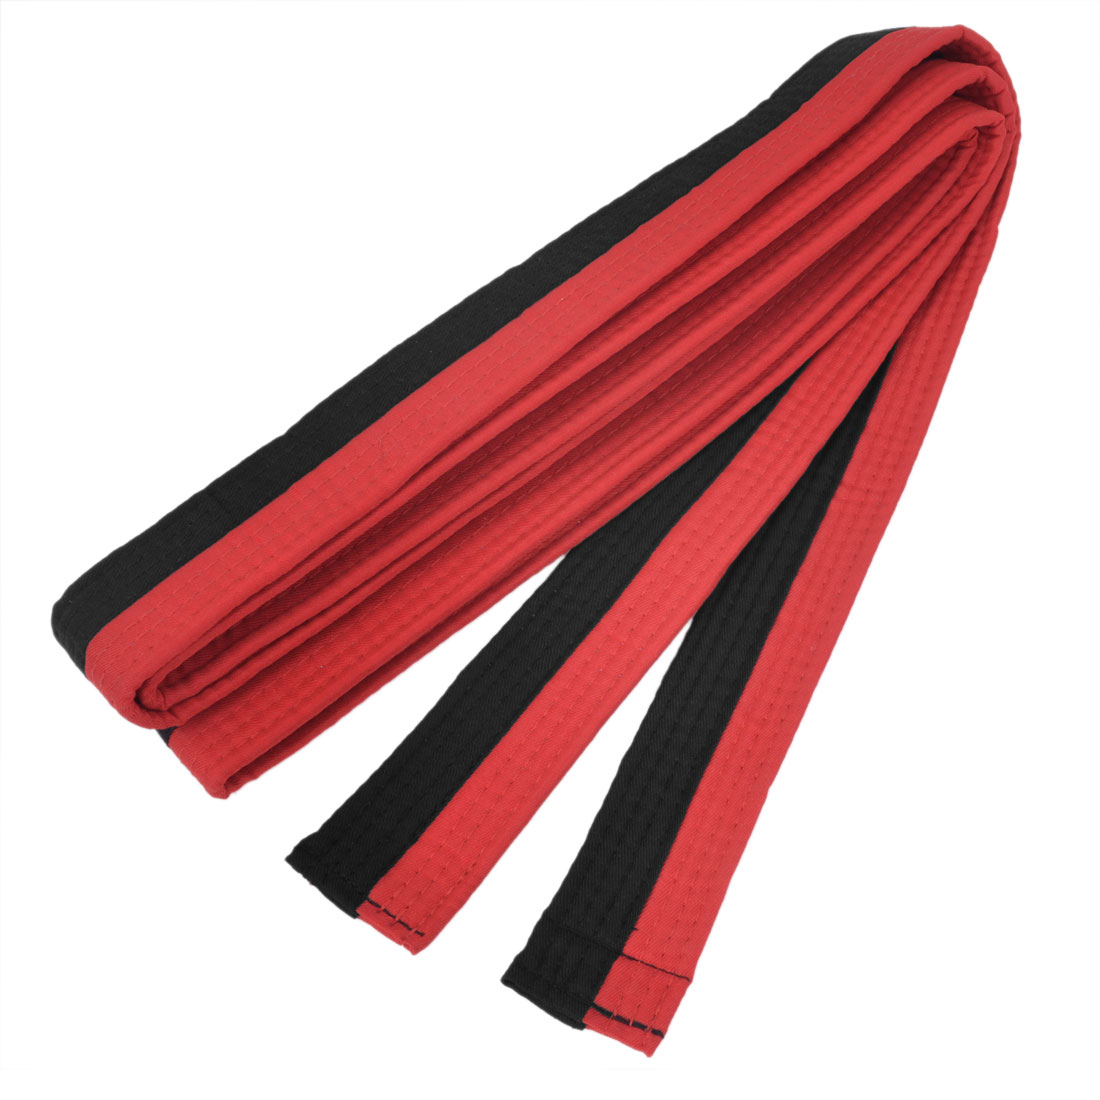 Red Black Level 1 Martial Arts Karate Tae Kwon Do Judo Belts 260cm Long